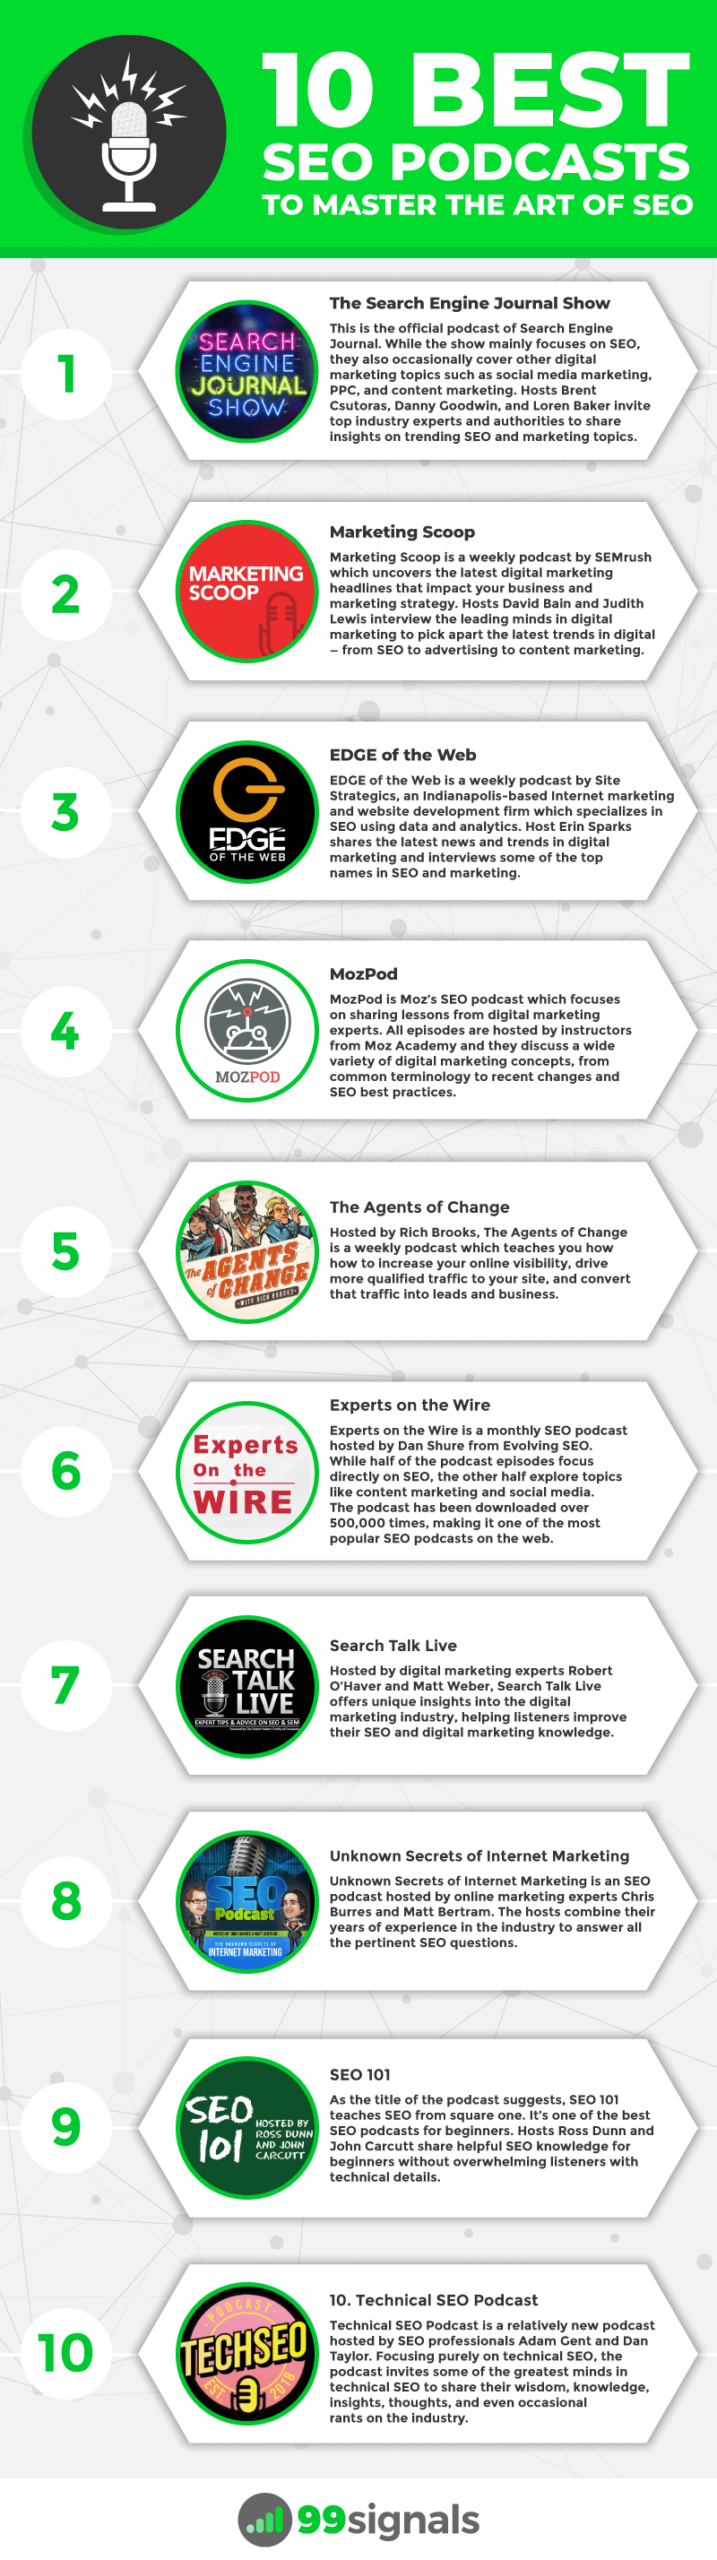 best seo podcasts infographic